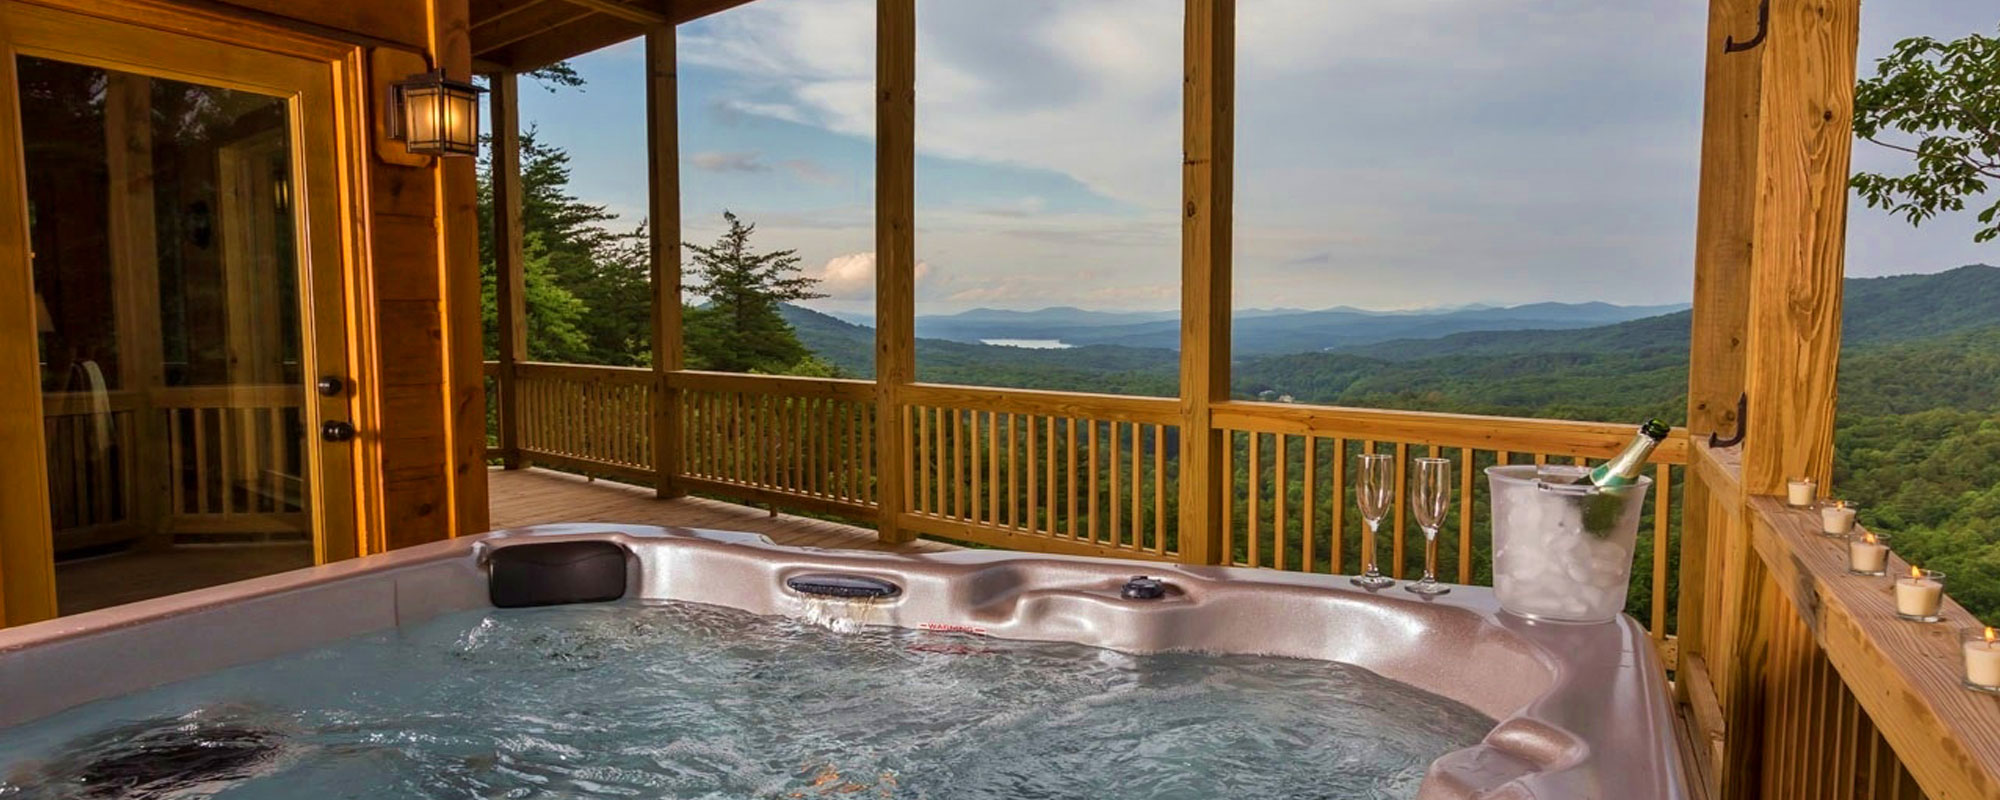 our cabins in springs north view relaxing a with offer carolina getaway asheville mountain